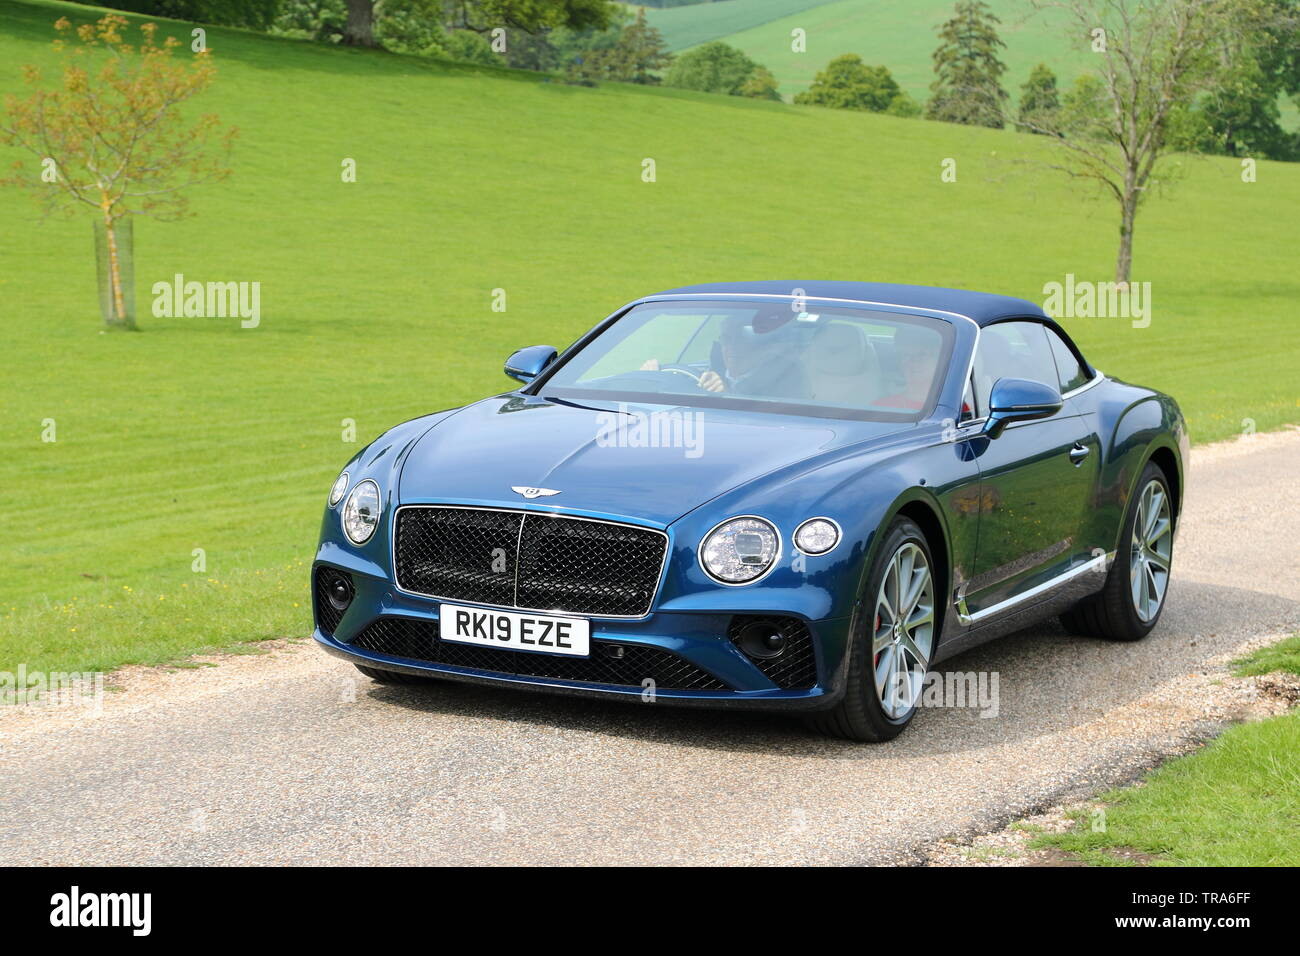 Bentley Convertible High Resolution Stock Photography And Images Alamy